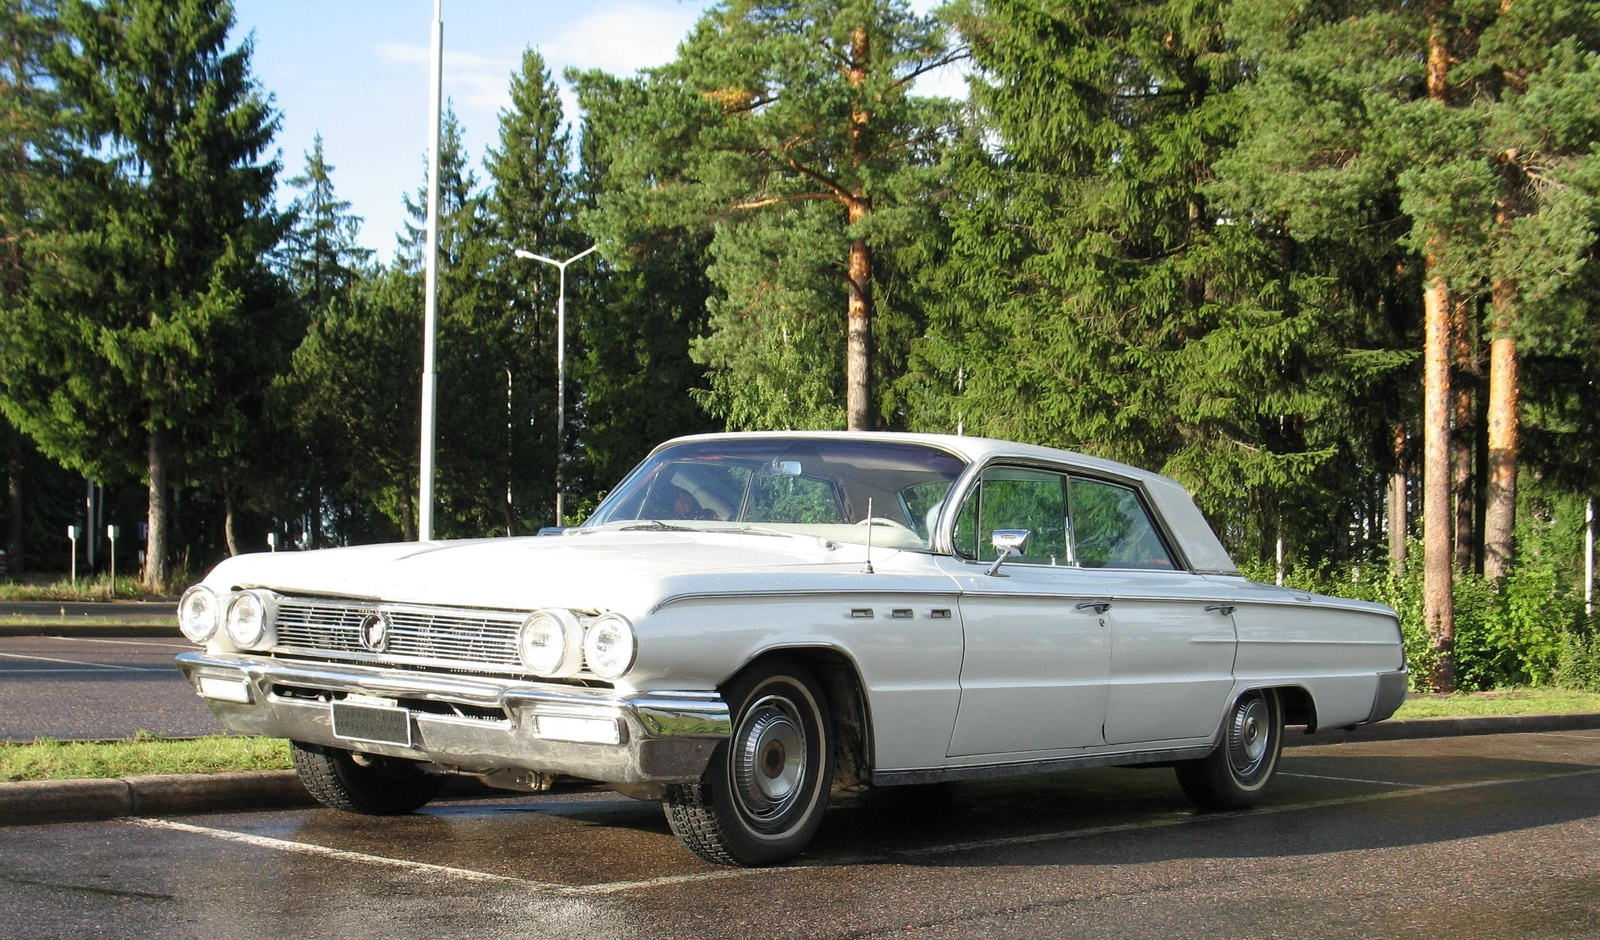 1999 Buick LeSabre together with County Line Catch And Release Sensitivity in addition 67 Buick Skylark besides 1956 Chevy Impala SS besides 1962 Buick Electra. on 1962 buick wildcat